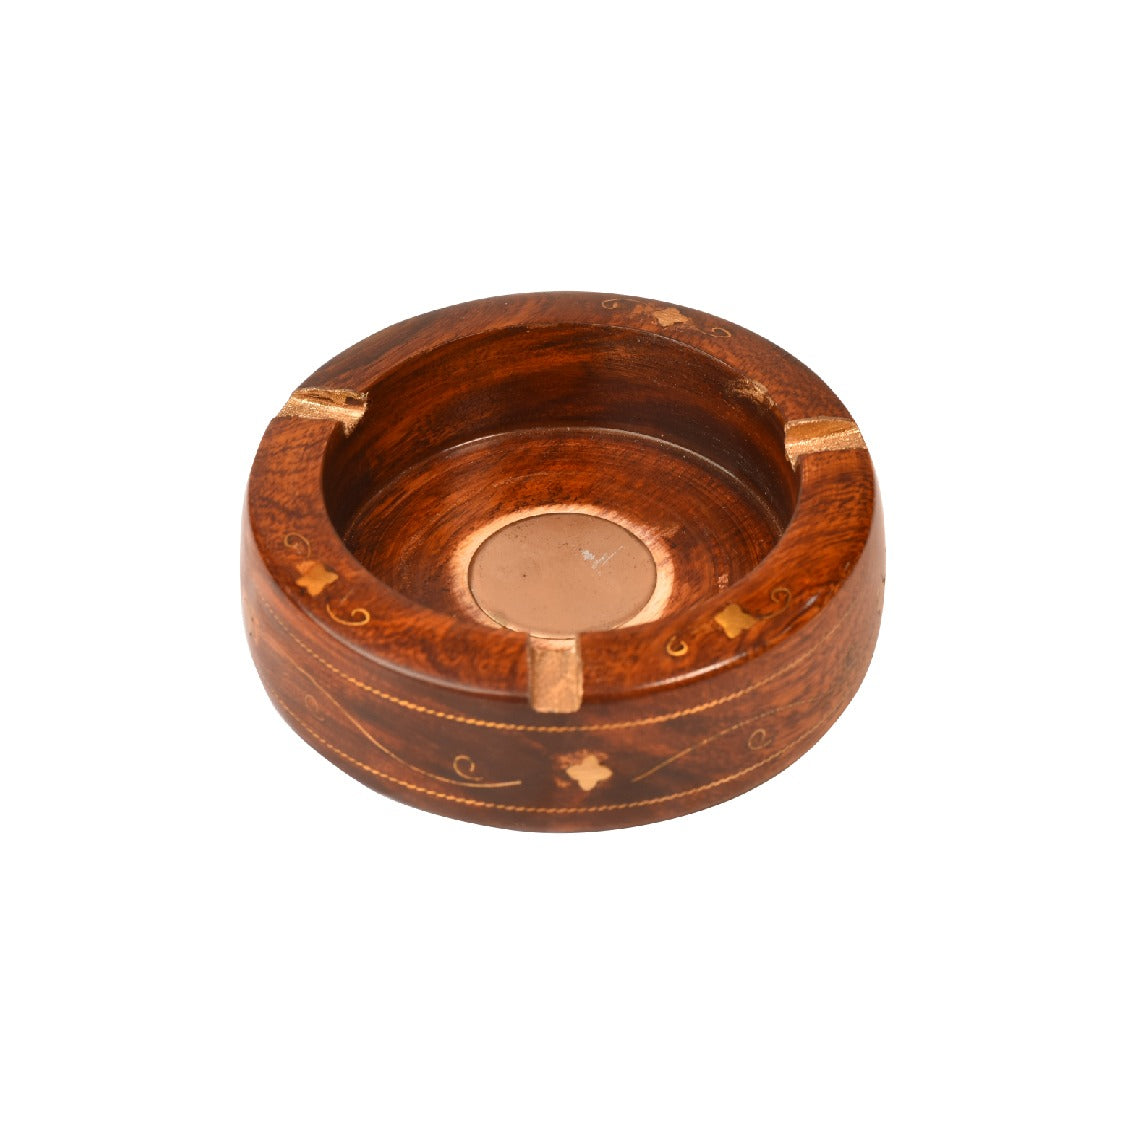 Handcrafted Wooden Ashtray